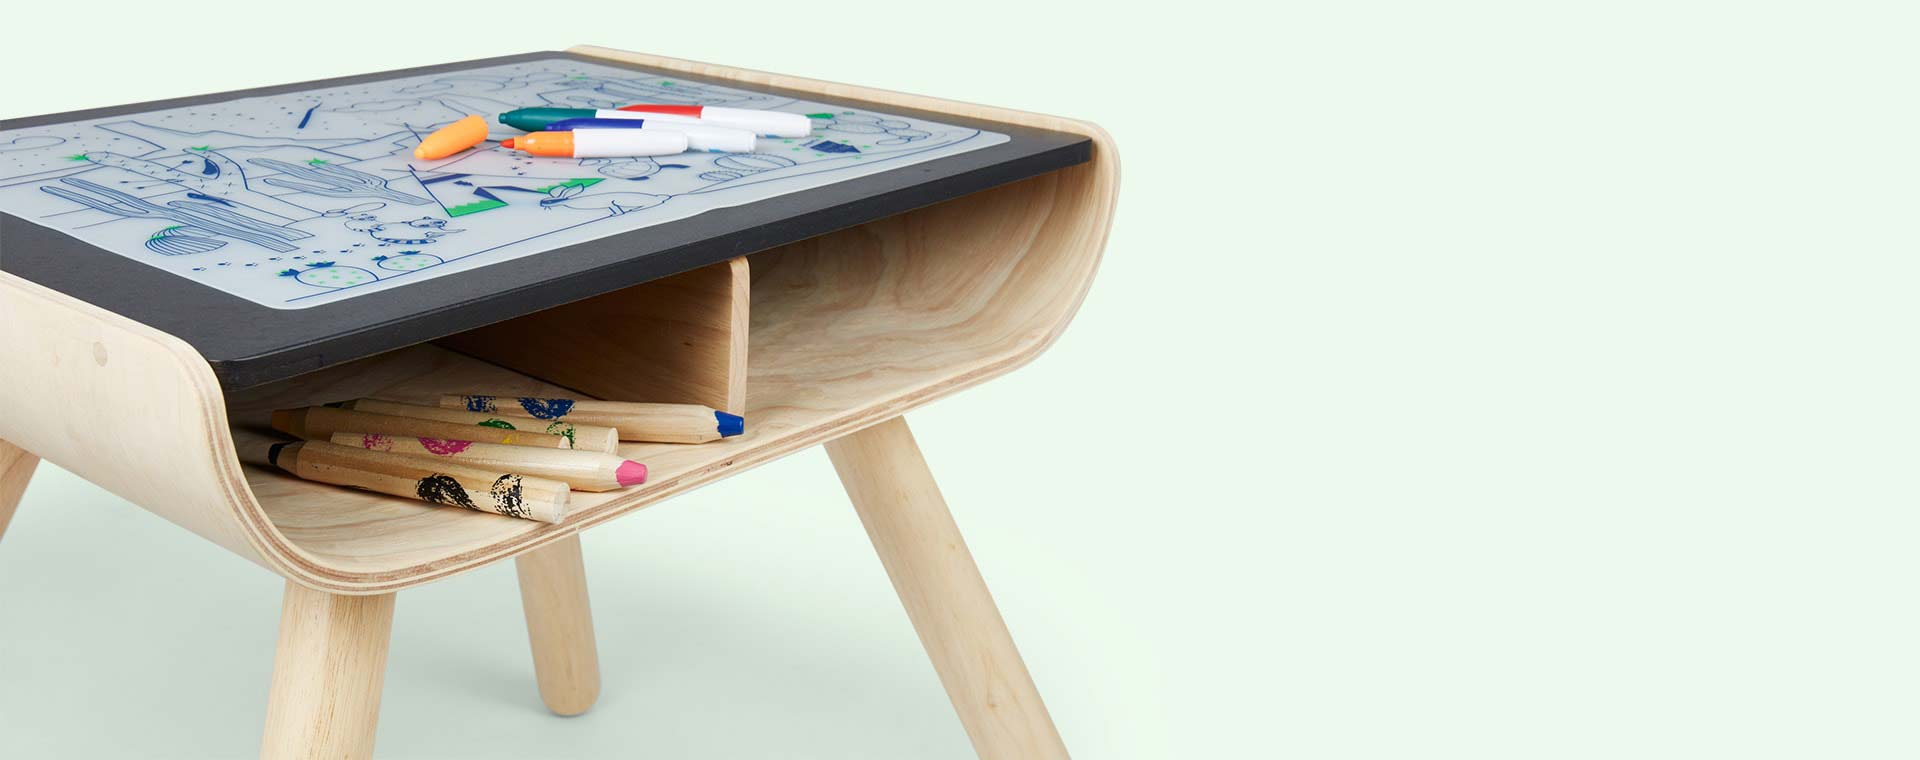 Buy The Plan Toys Table Amp Chair At Kidly Uk